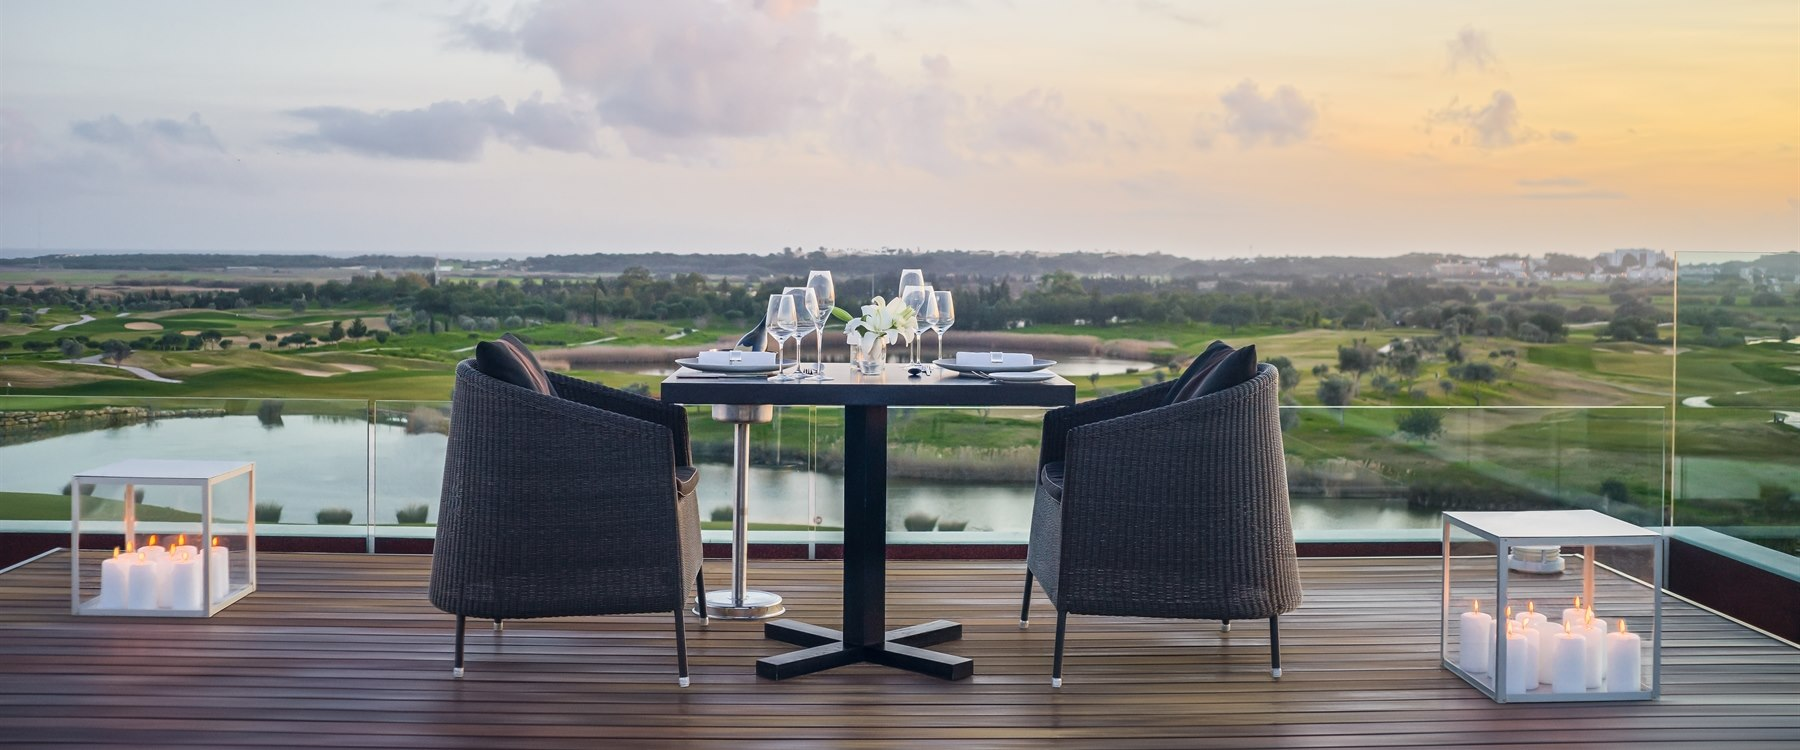 Presidential Suite Terrace at Anantara Vilamoura, Algarve